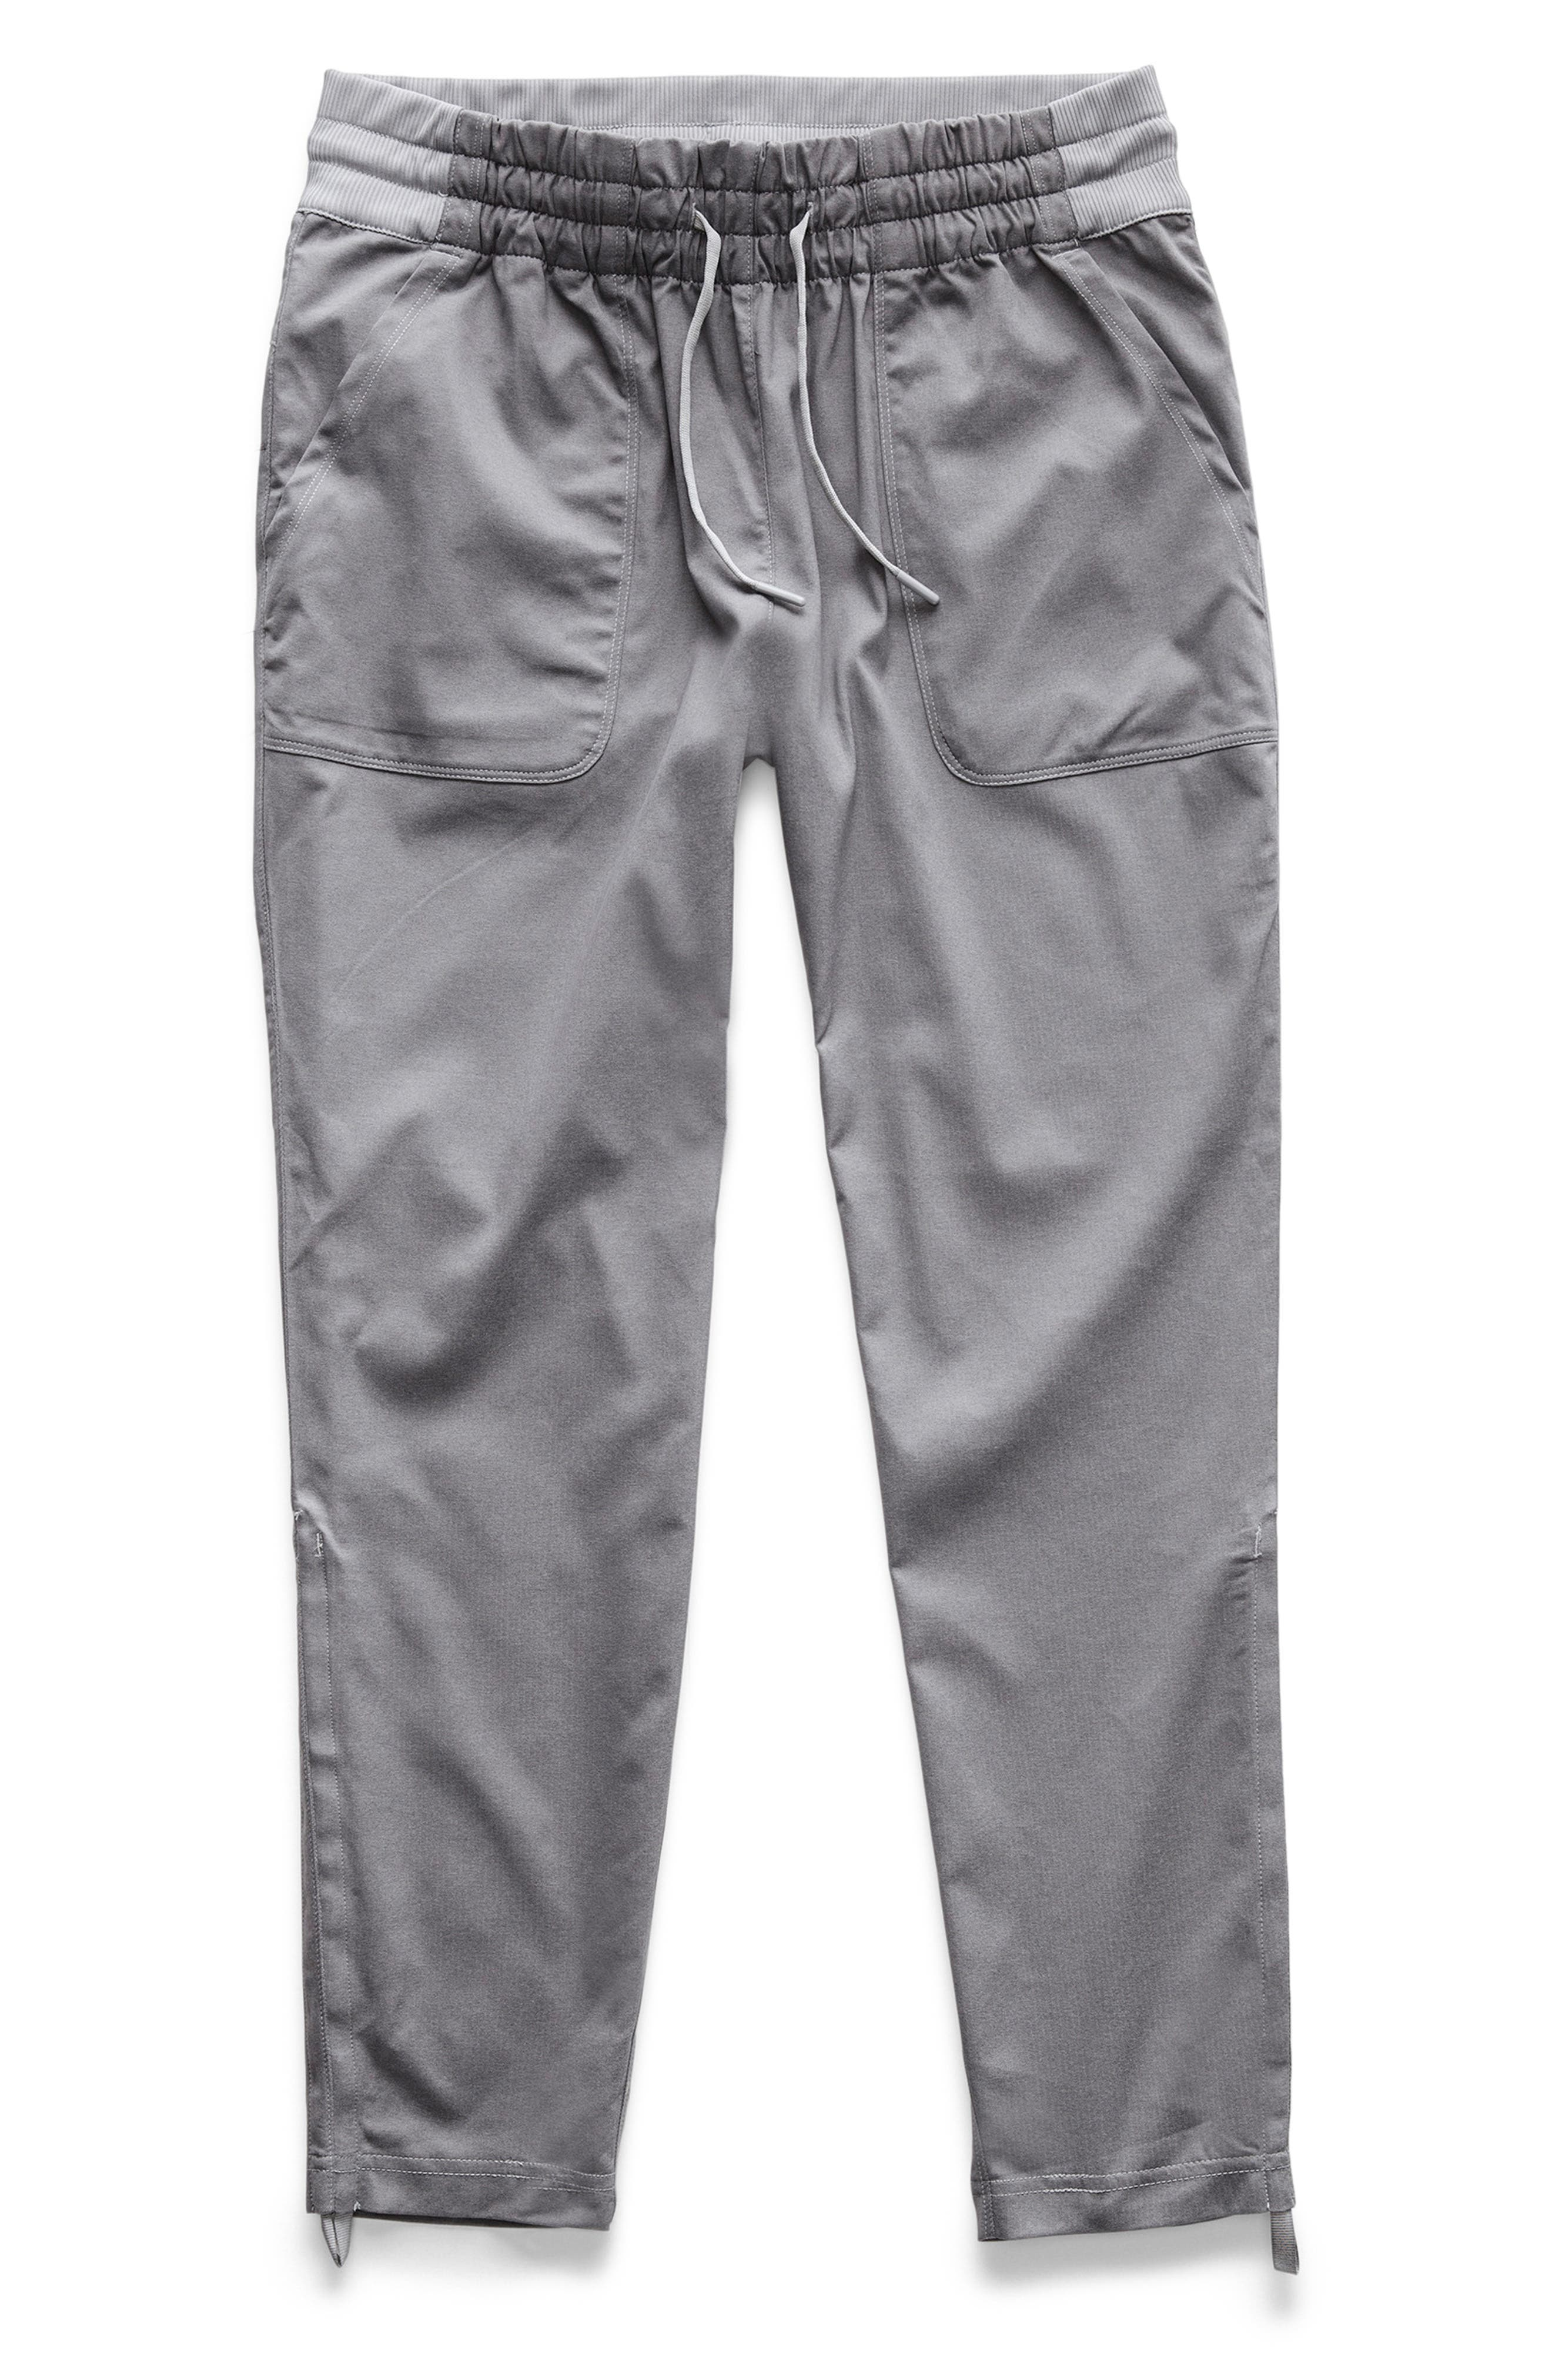 The North Face Aphrodite Motion 2.0 Pants, Grey